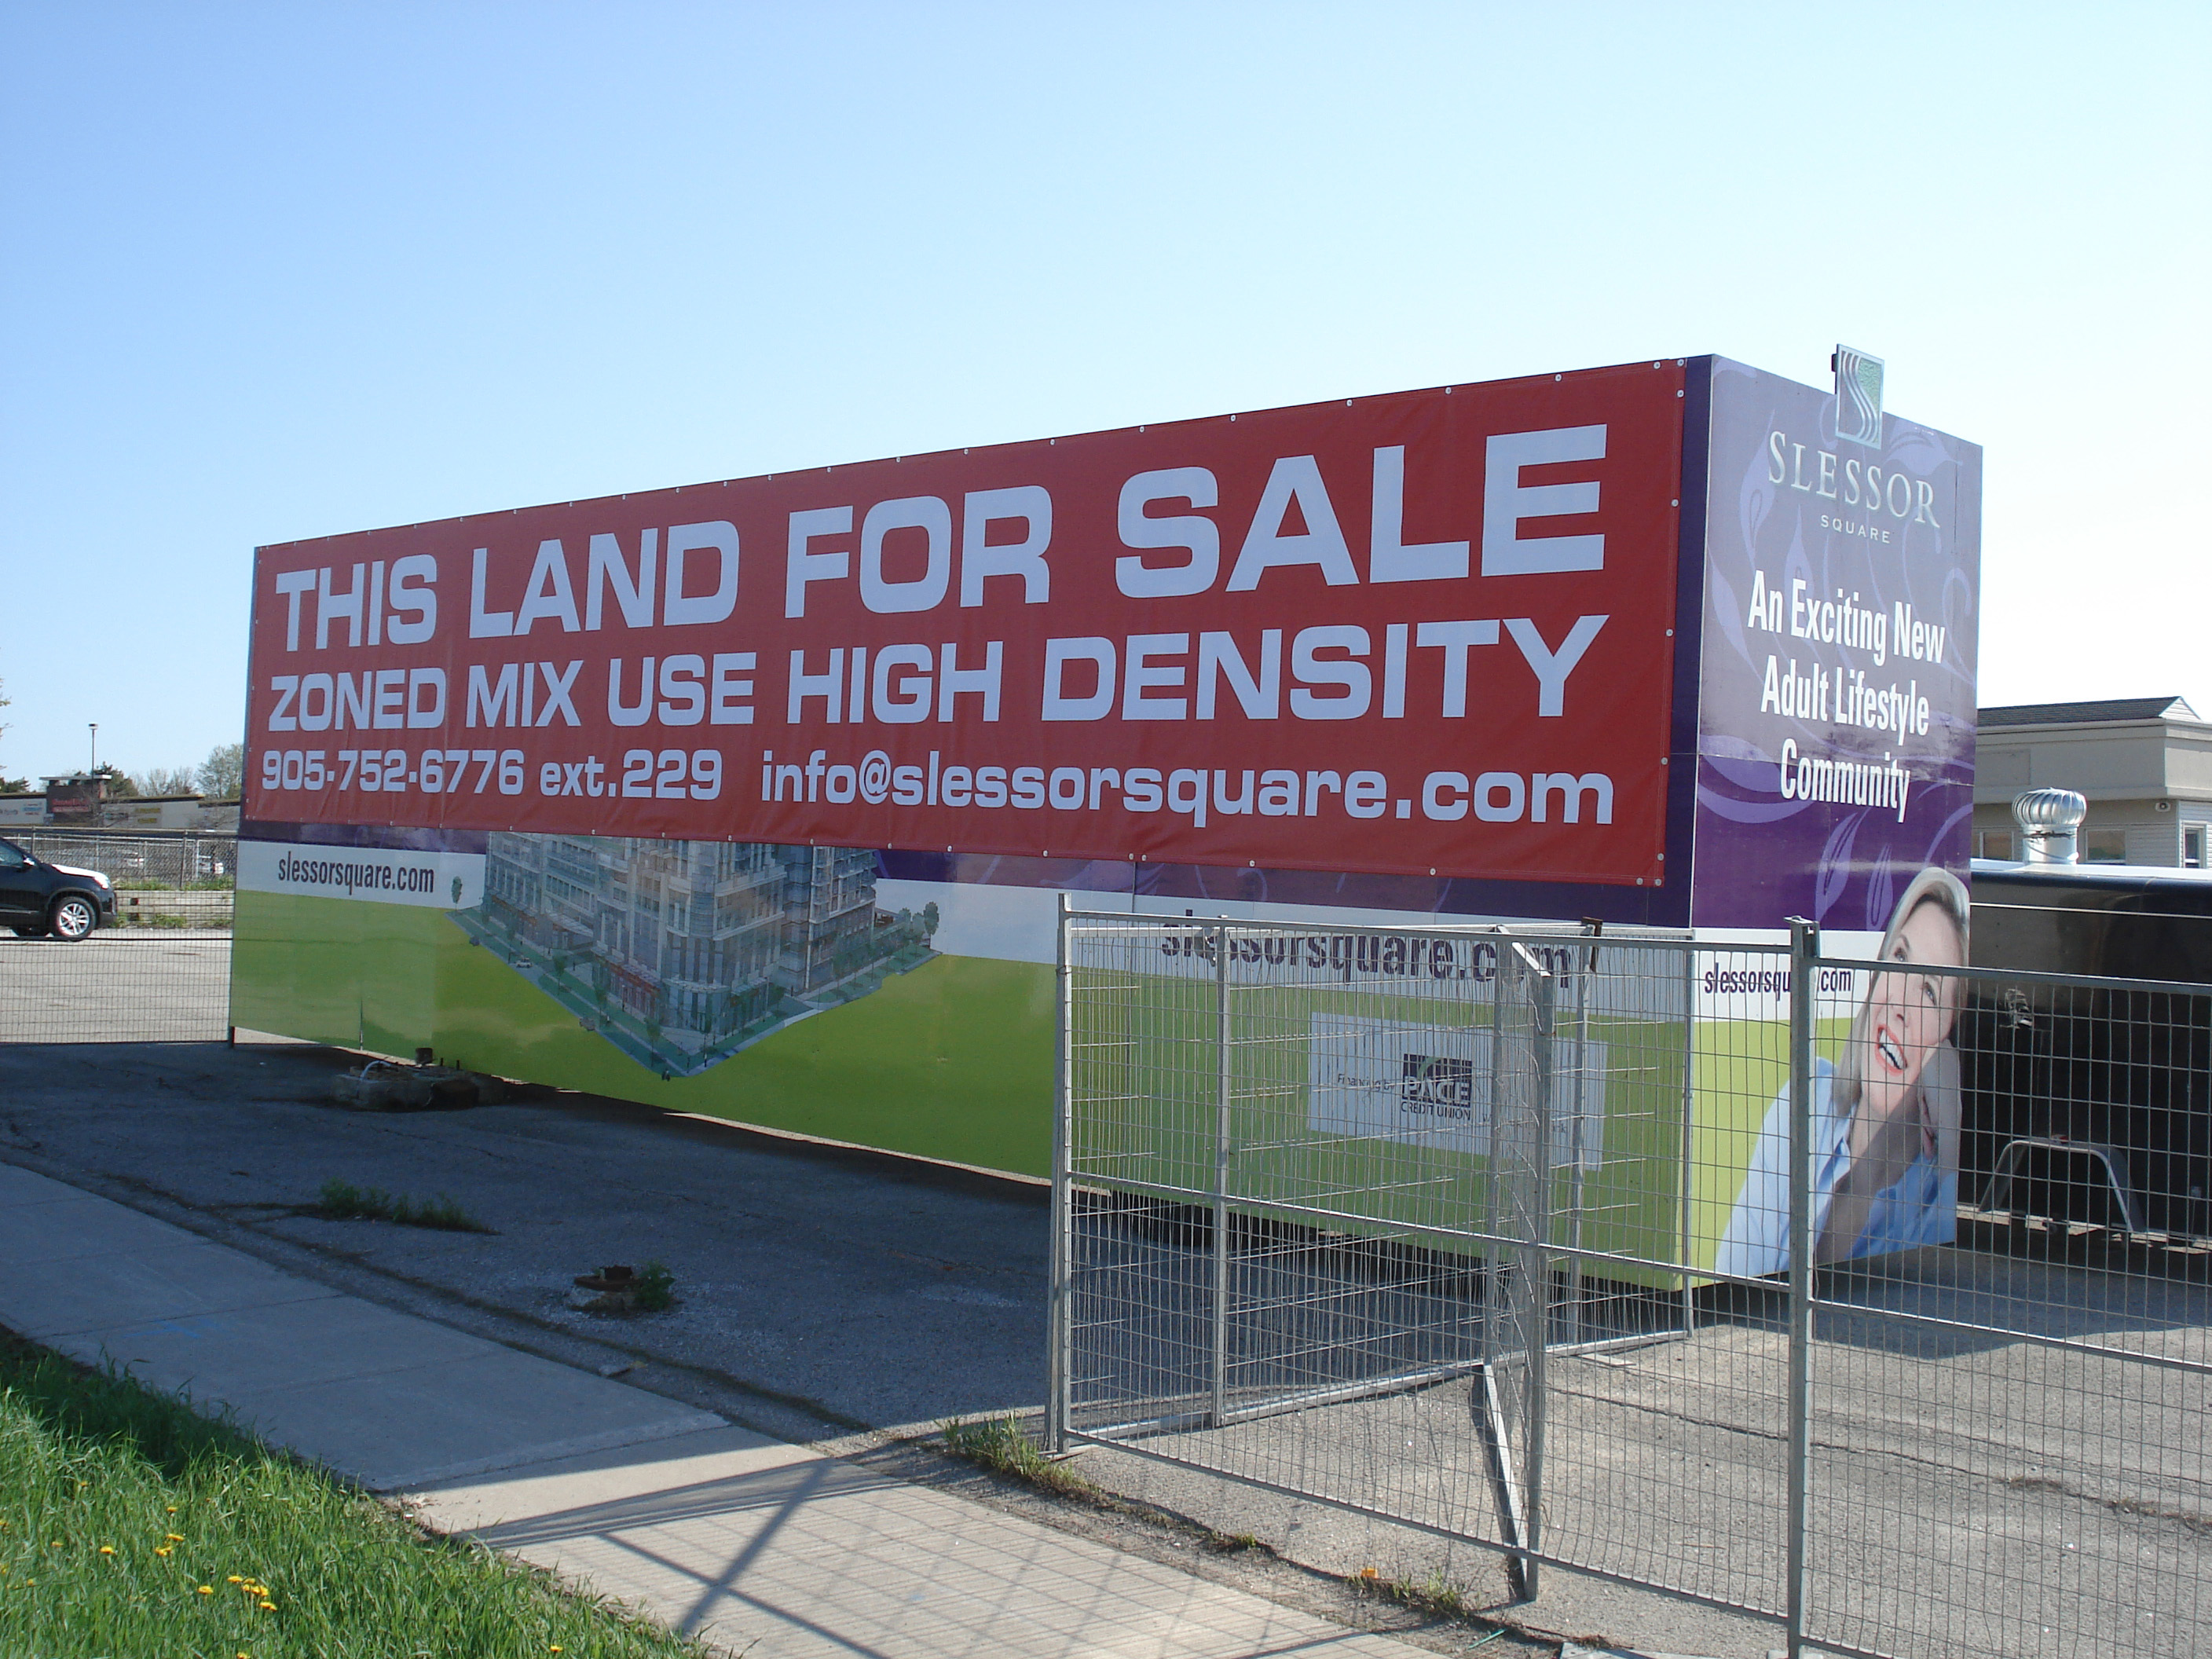 Slessor Land for Sale